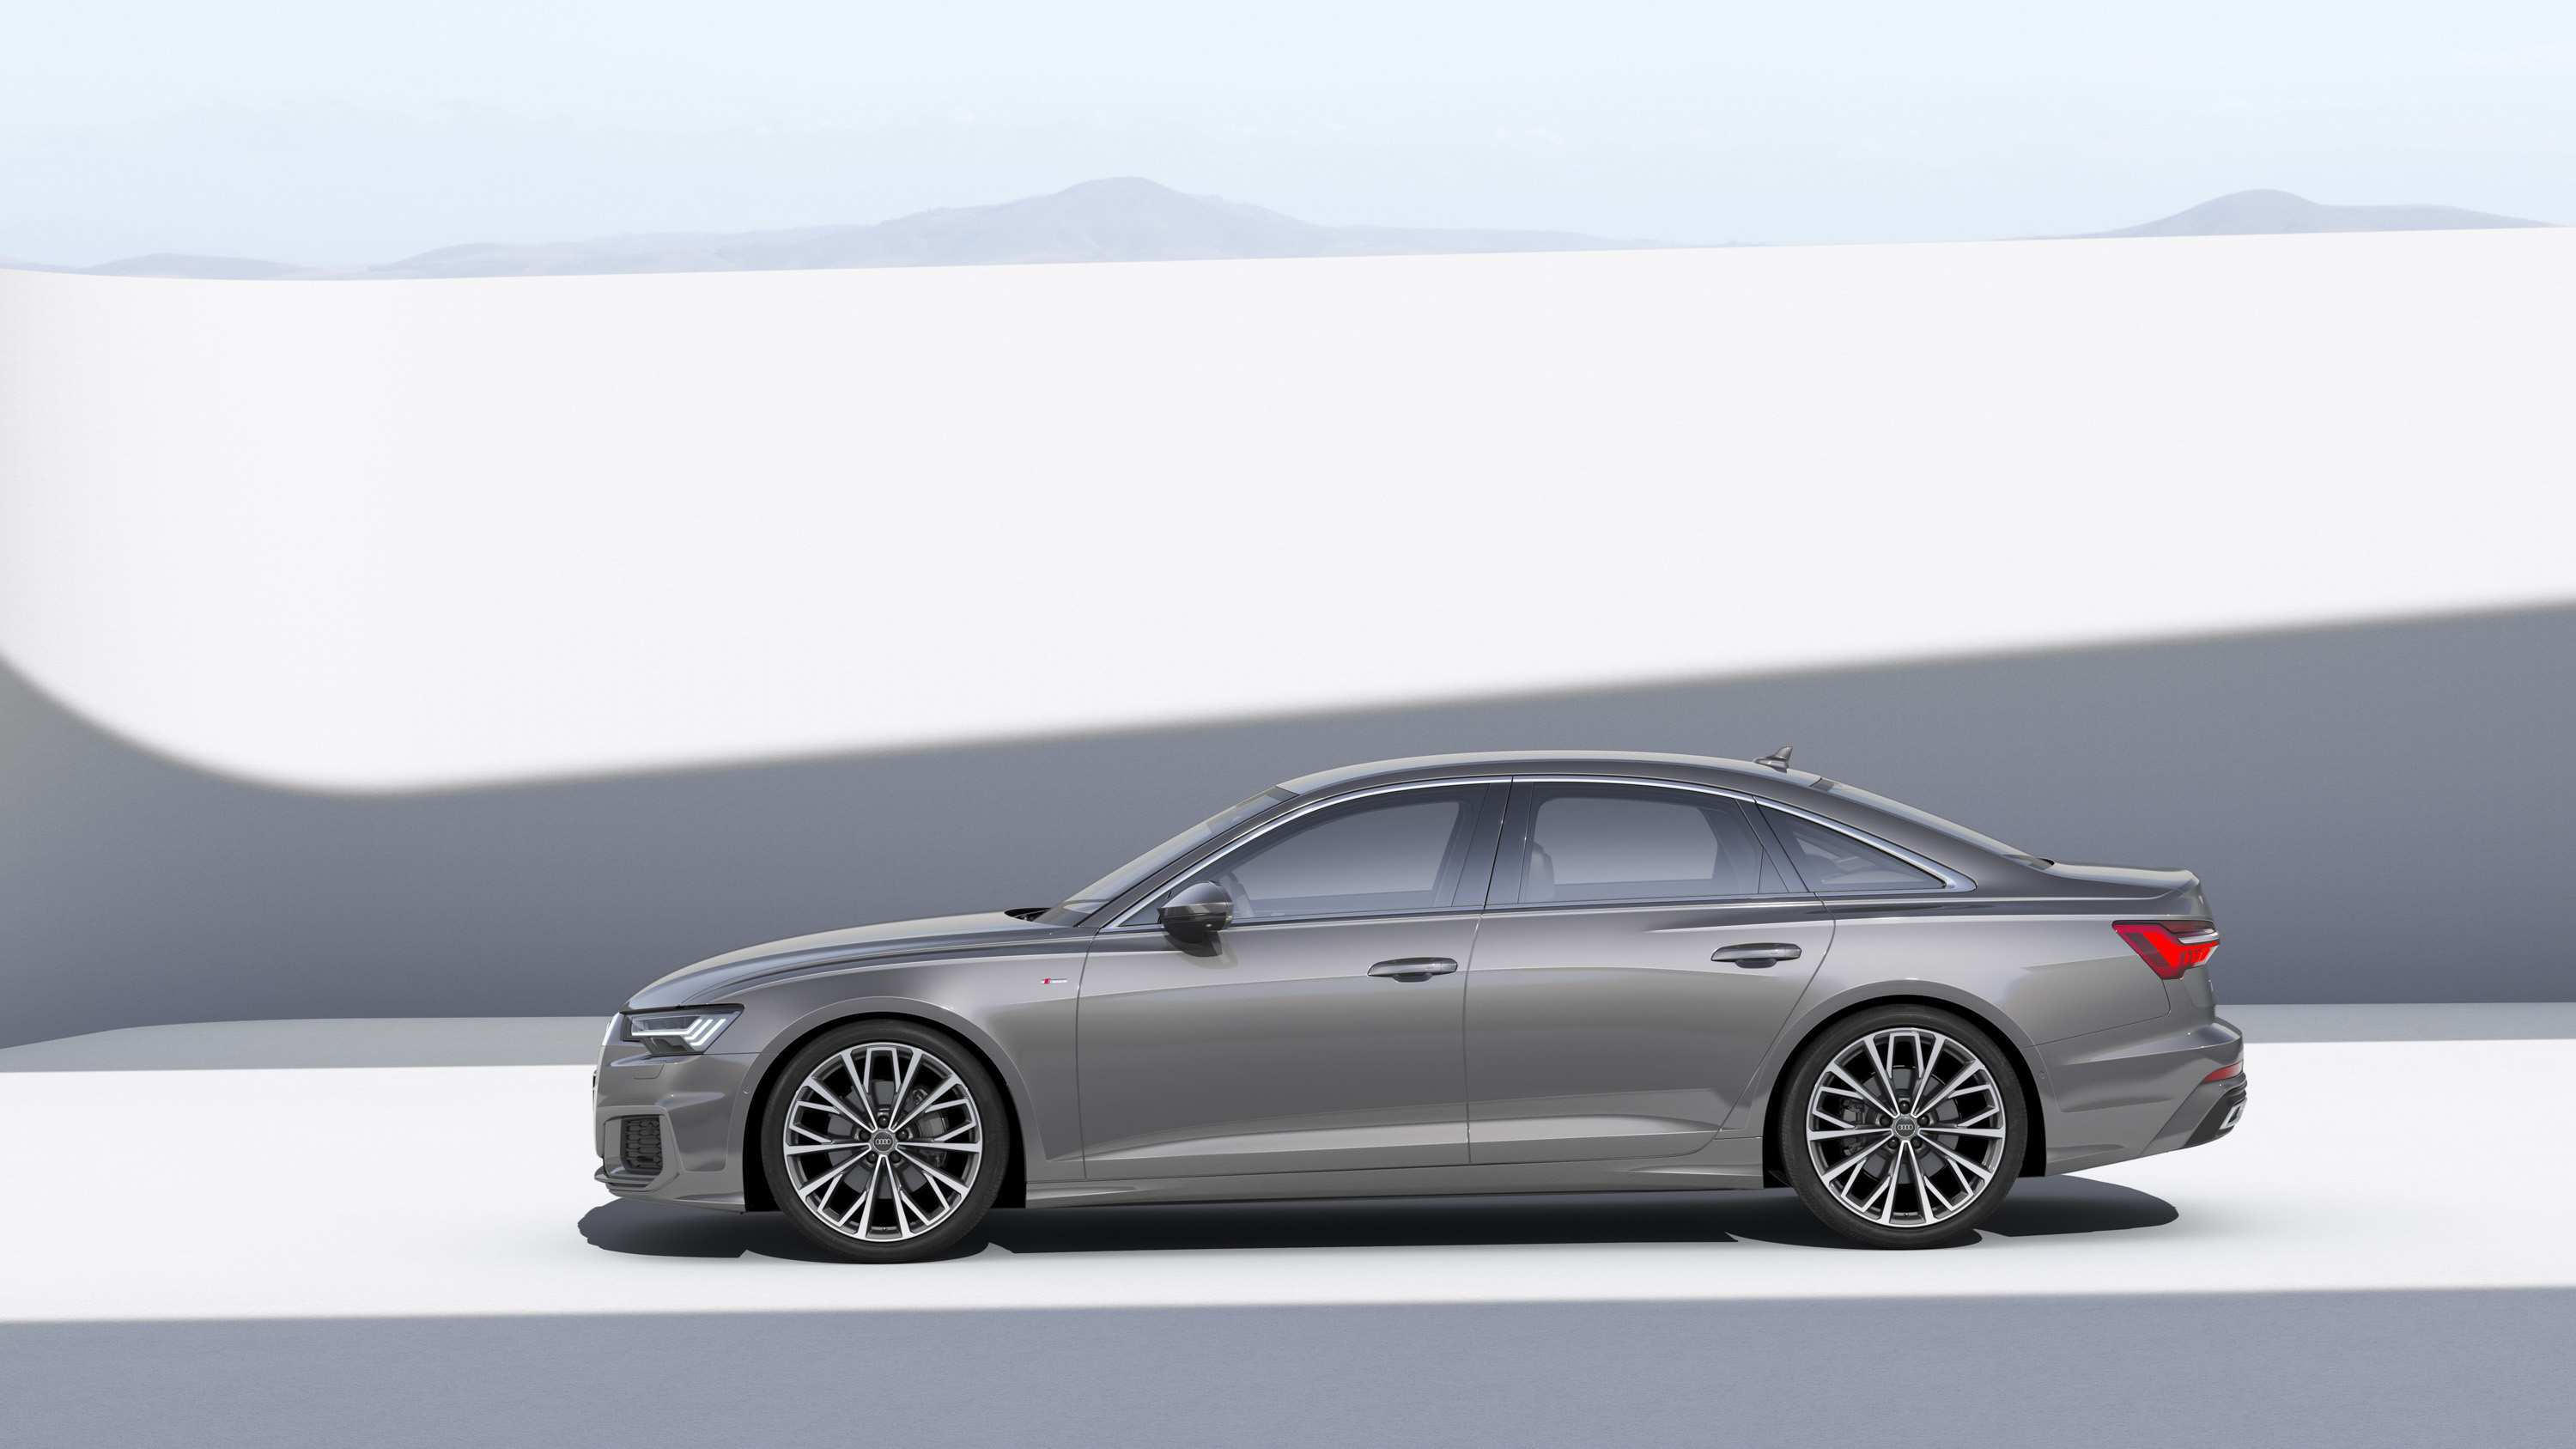 60 Gallery of Audi A6 2019 Ground Clearance Review Specs And Release Date Spy Shoot with Audi A6 2019 Ground Clearance Review Specs And Release Date